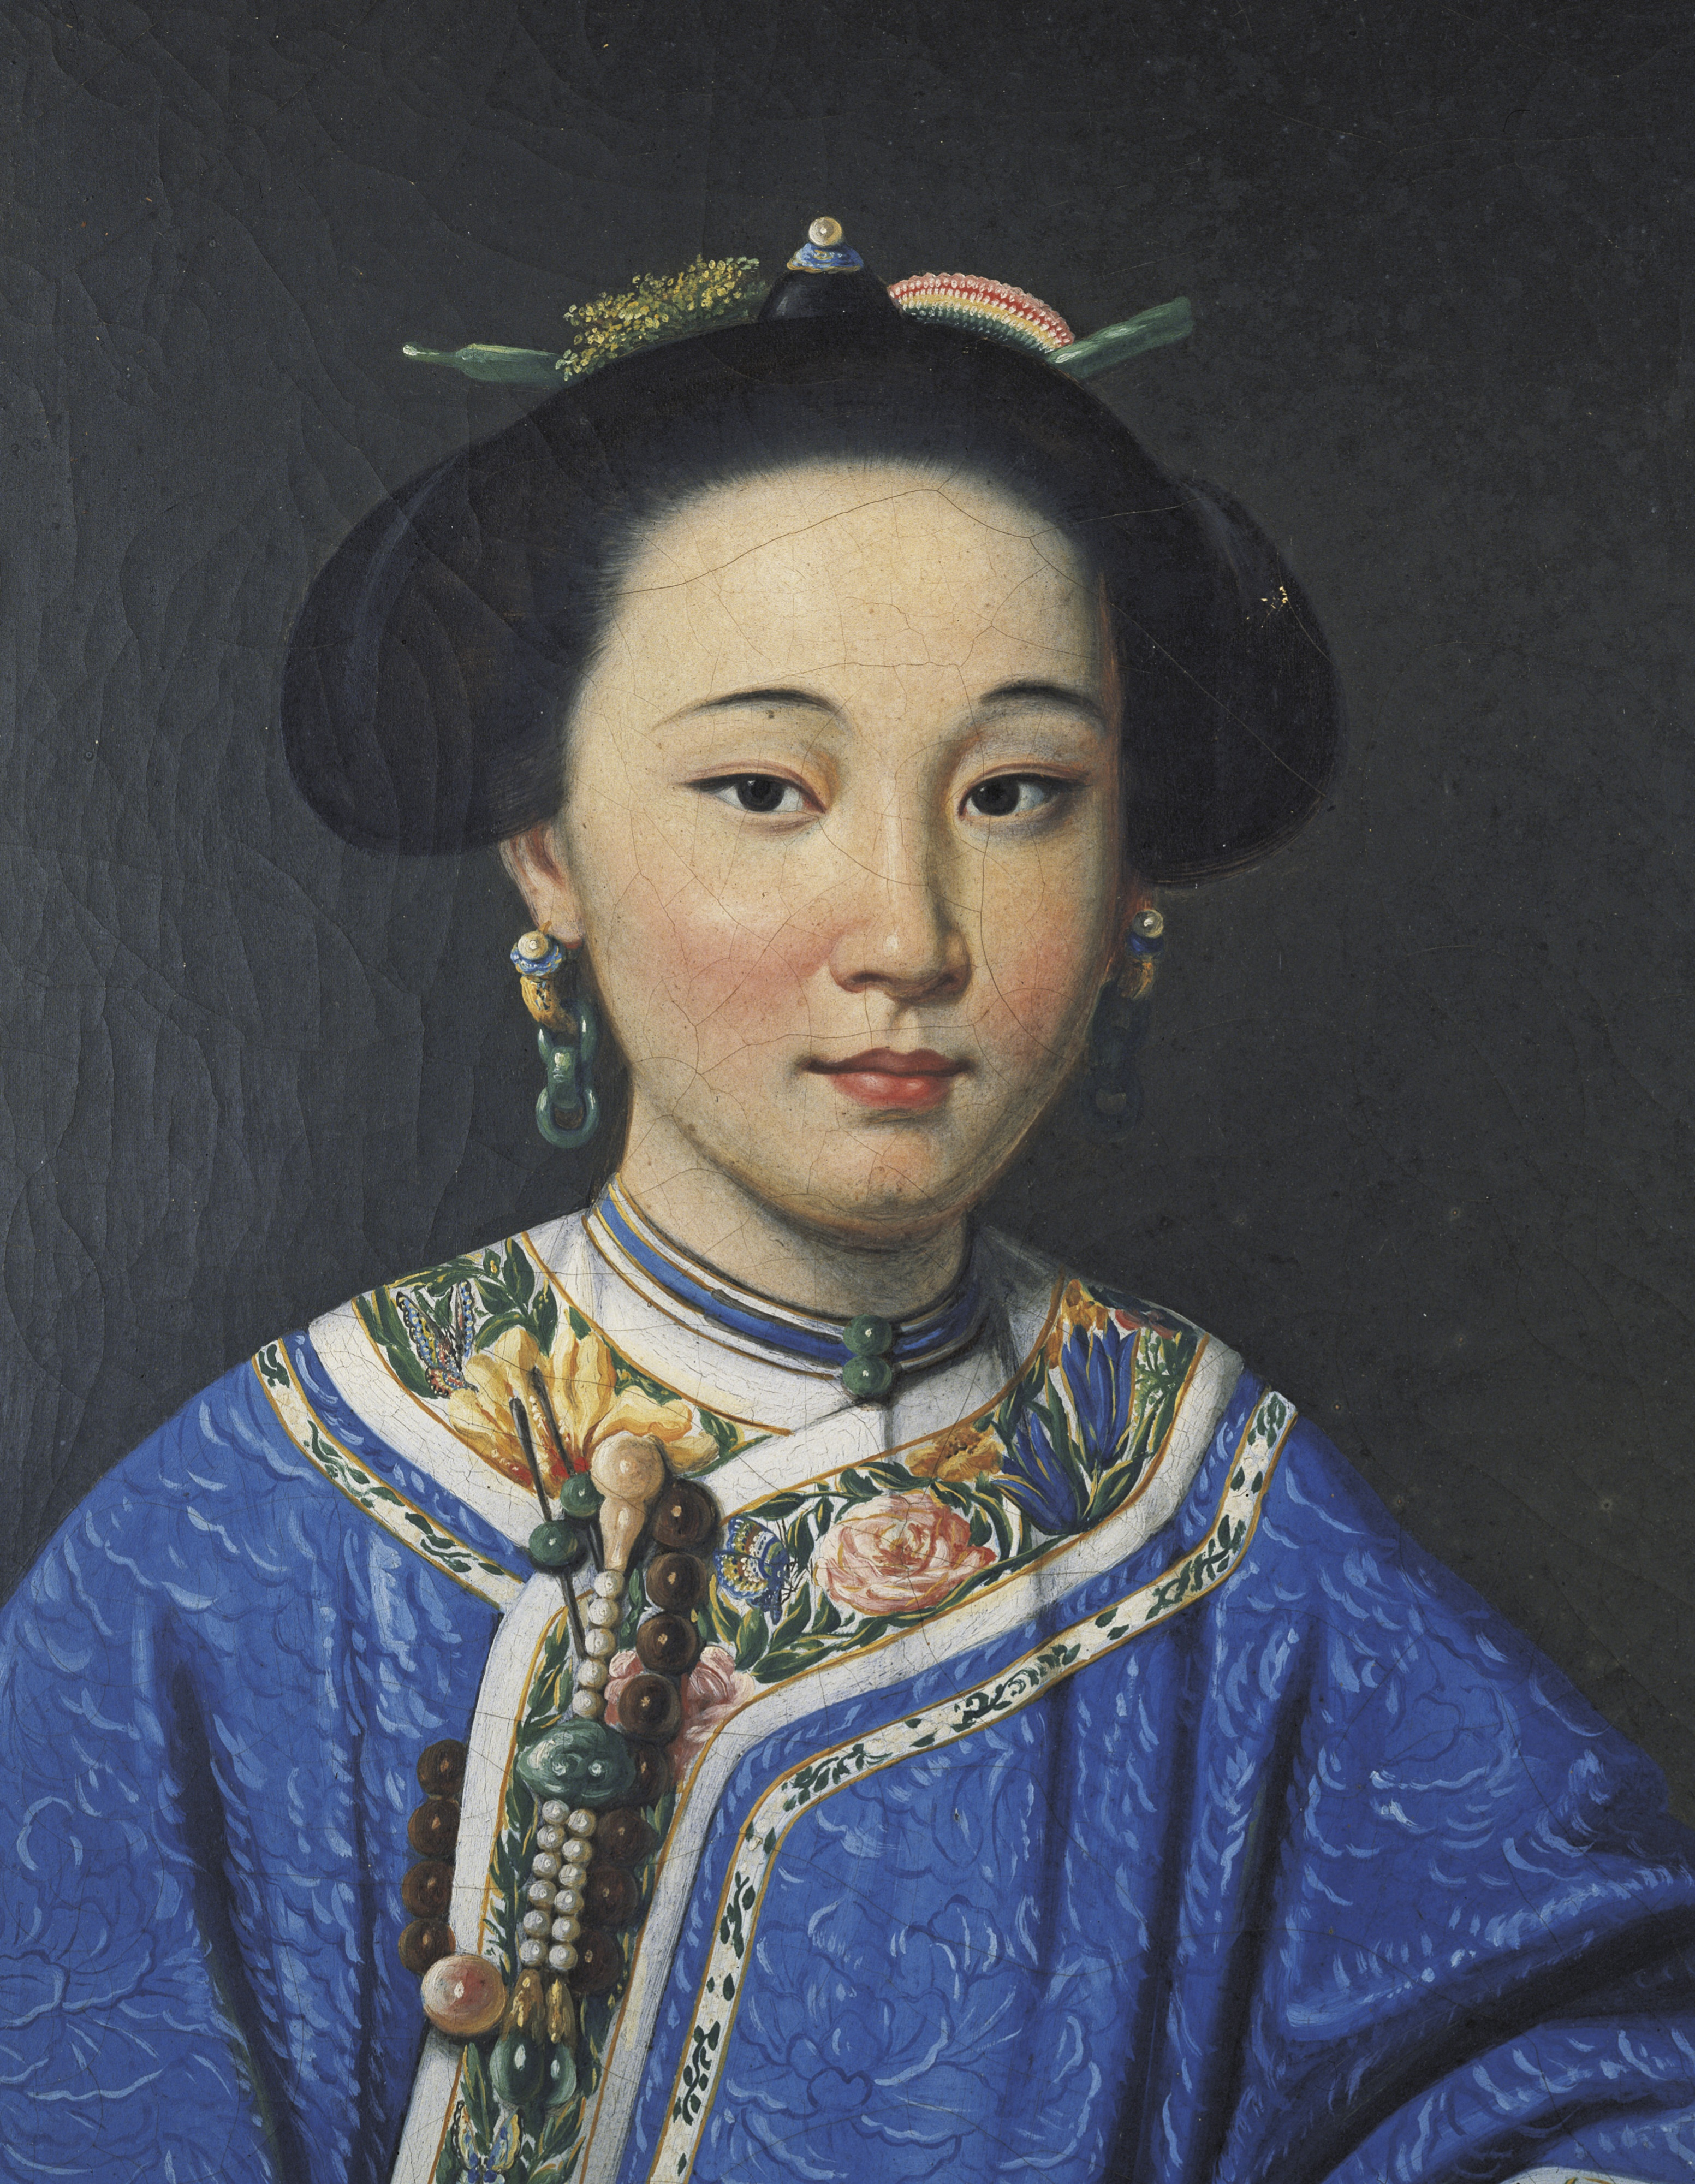 Detail, Unknown Artist, The Fragrant Concubine, Qing Dynasty 18th-19th Century. oil on canvas. Private Collection